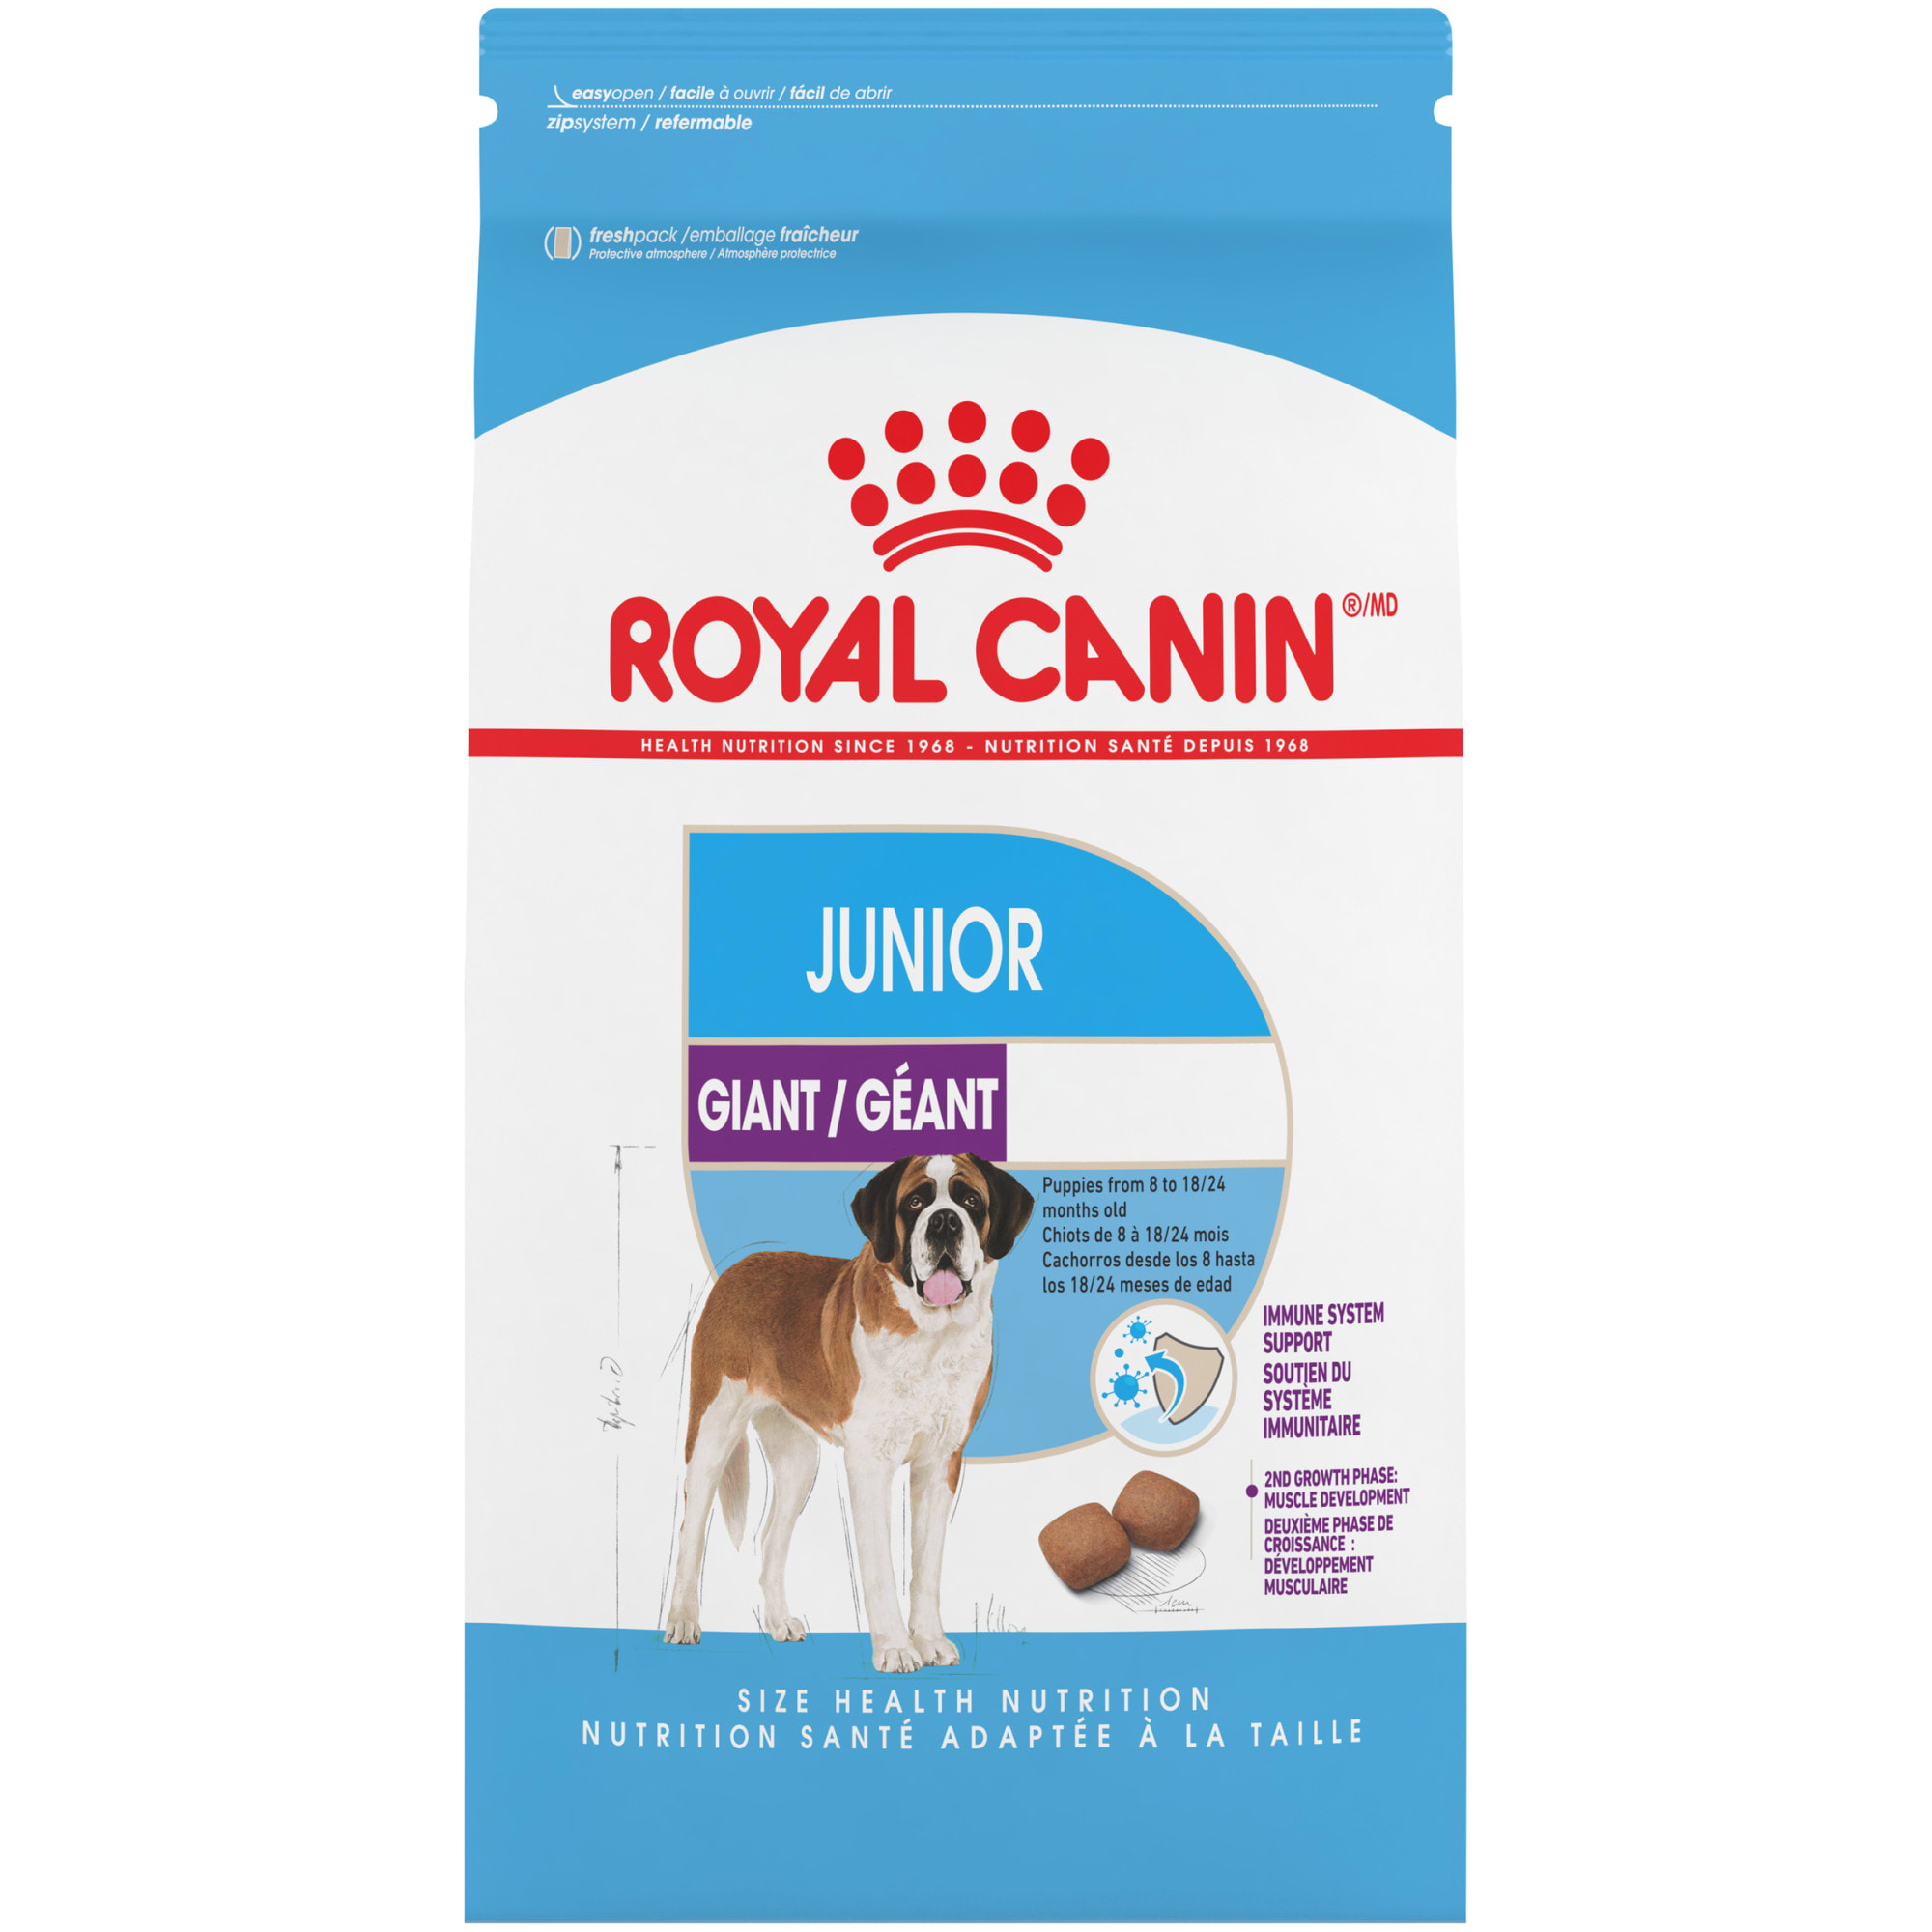 Royal Canin Giant Junior Dry Puppy Food 30 Lbs Petco